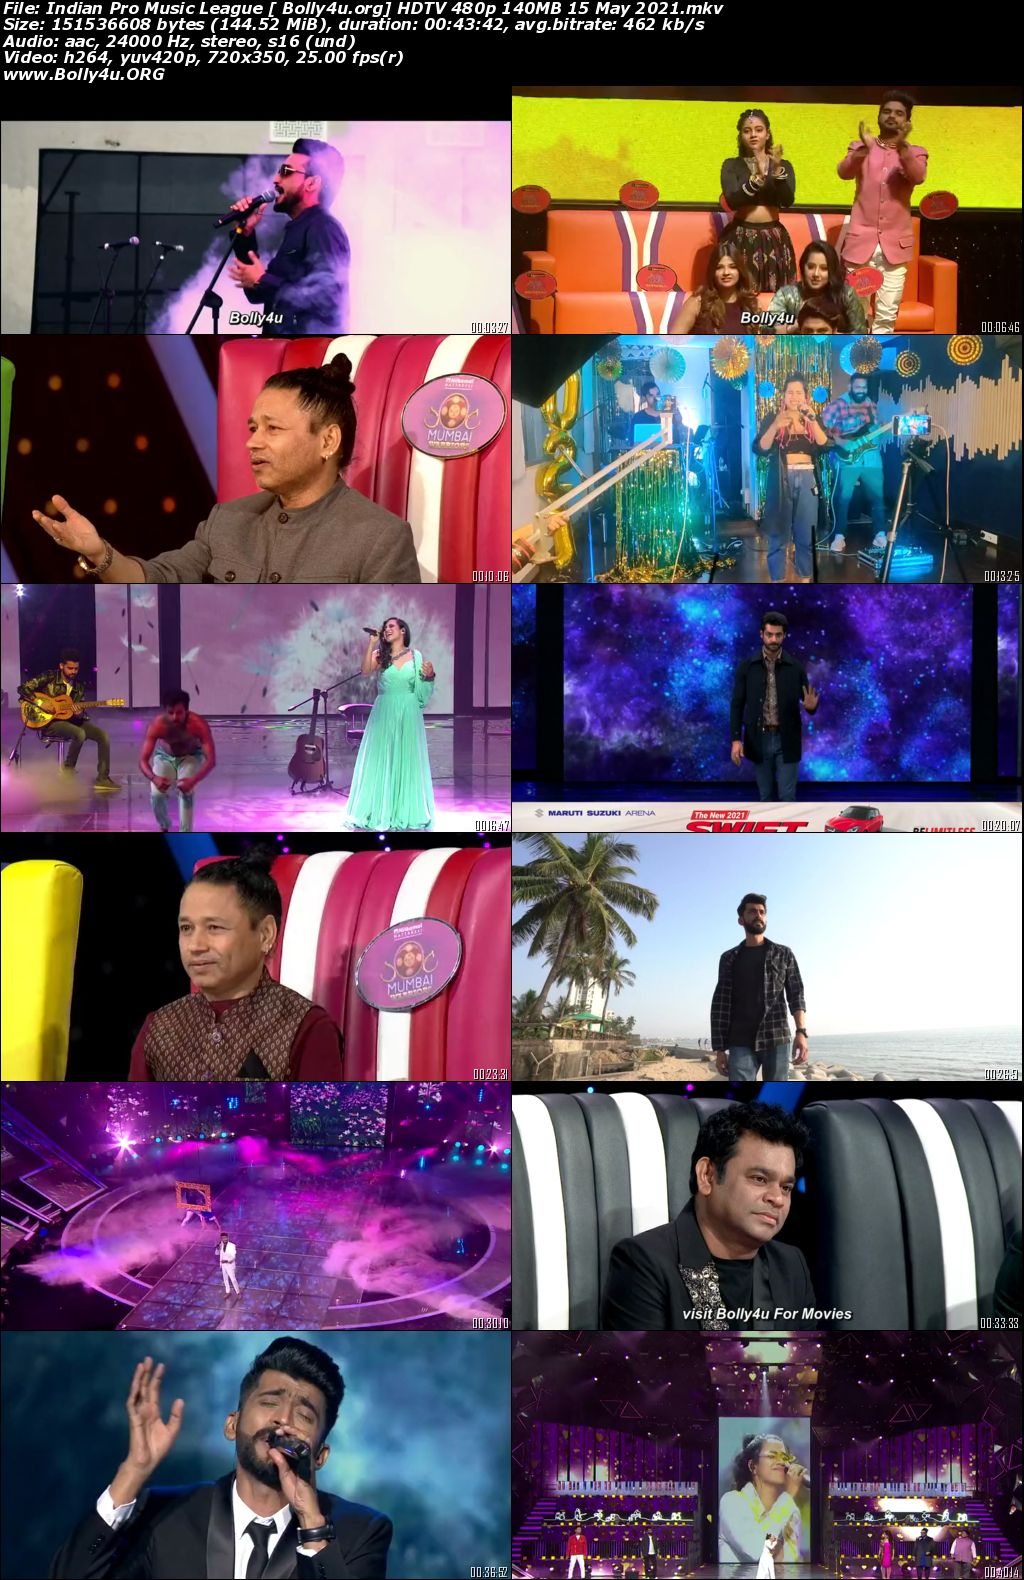 Indian Pro Music League HDTV 480p 140MB 15 May 2021 Download